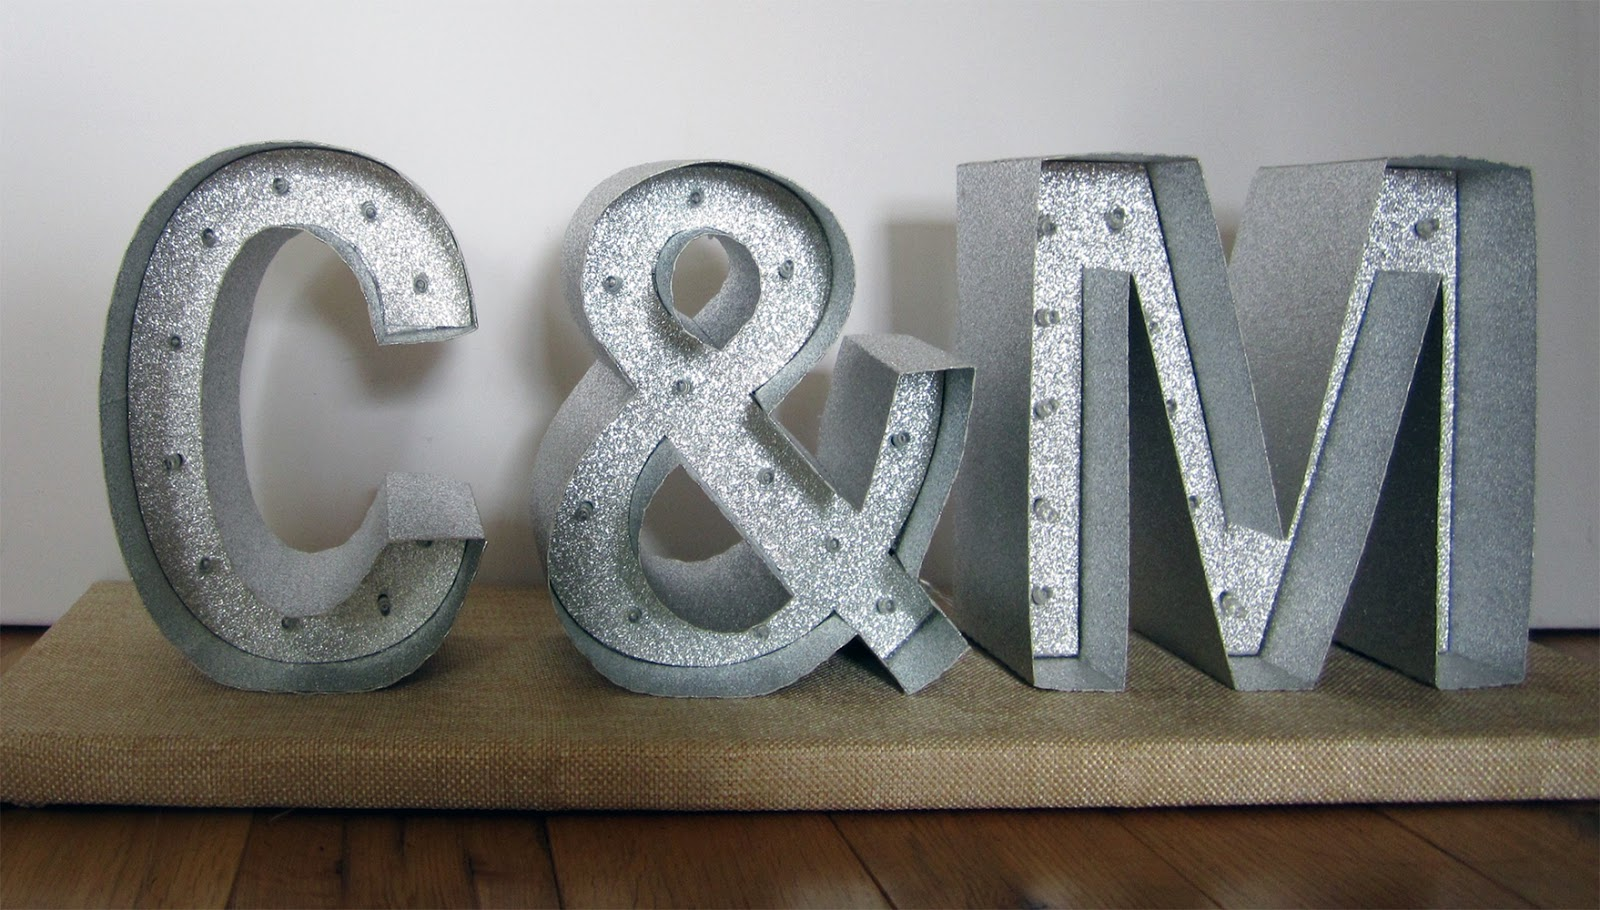 the files are designed by carina gardner and the alphabet numbers and a few other shapes are available from the silhouette design store